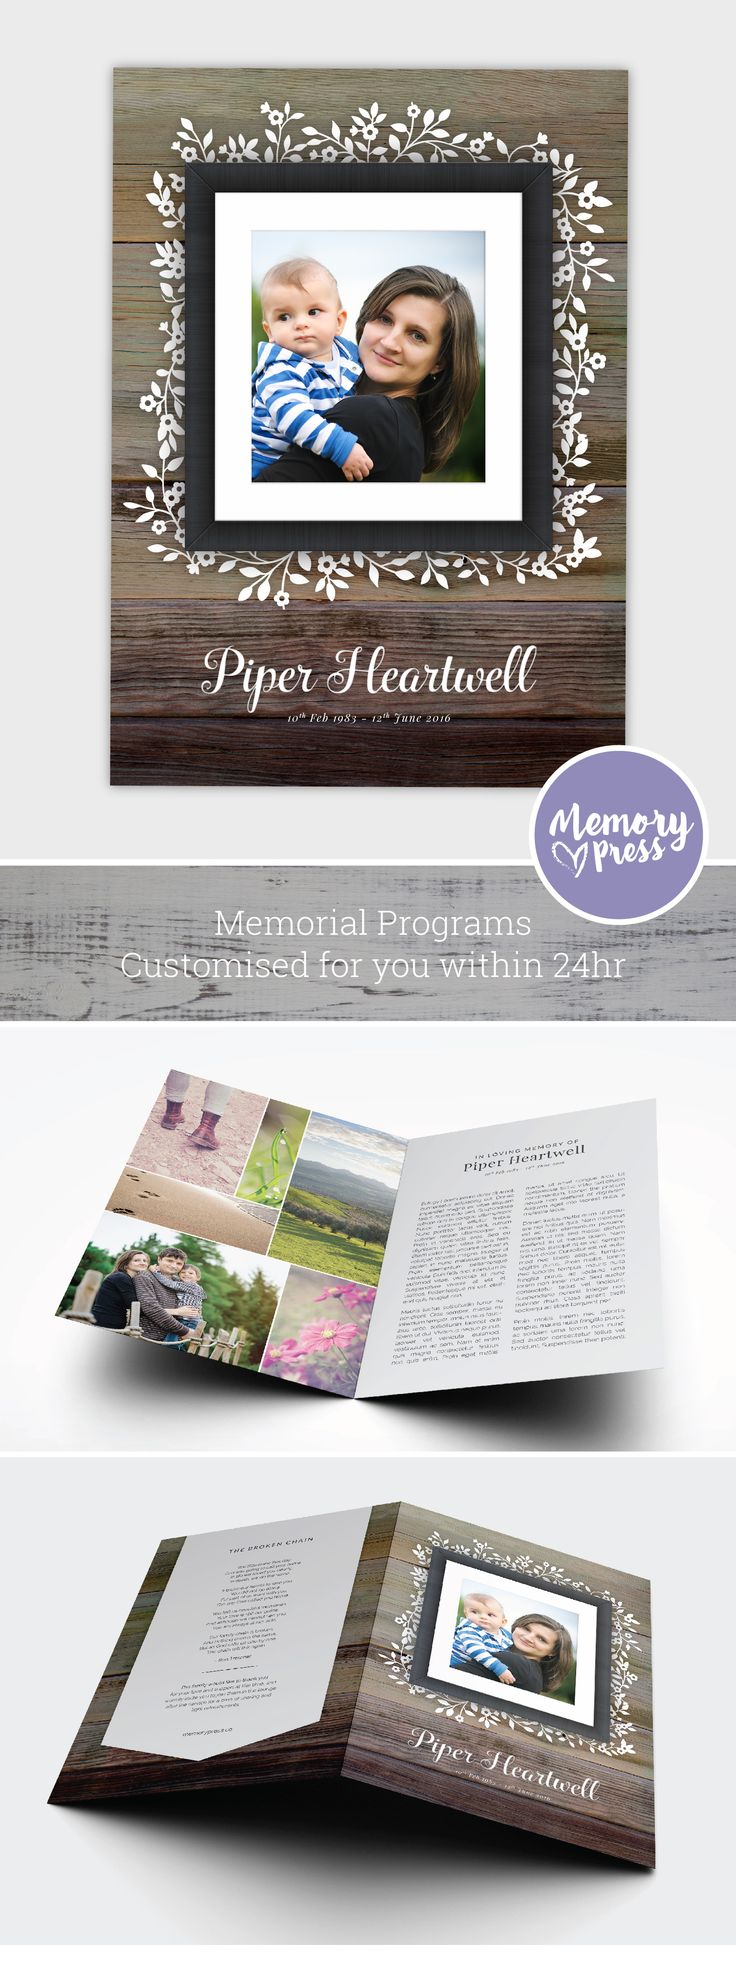 Lilac funeral and memorial program template. Have this customized by a professional Graphic Designer for only $99.90. Designed by Memory Press, available at memorypress.co